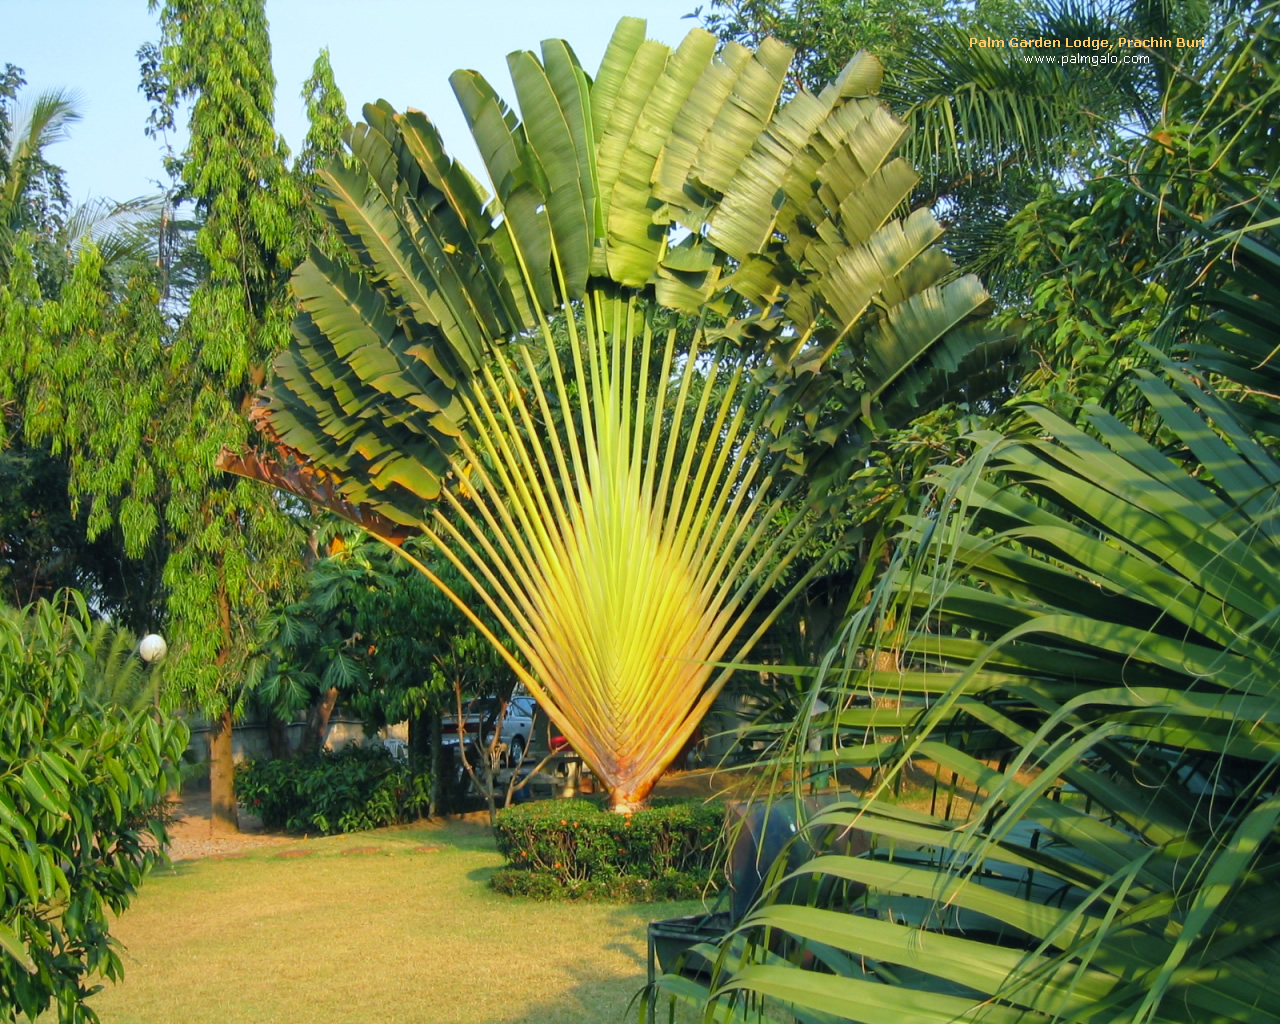 Wallpaper Palm Garden Lodge Prachin Buri   Banana Tree Palmgalo 1280x1024